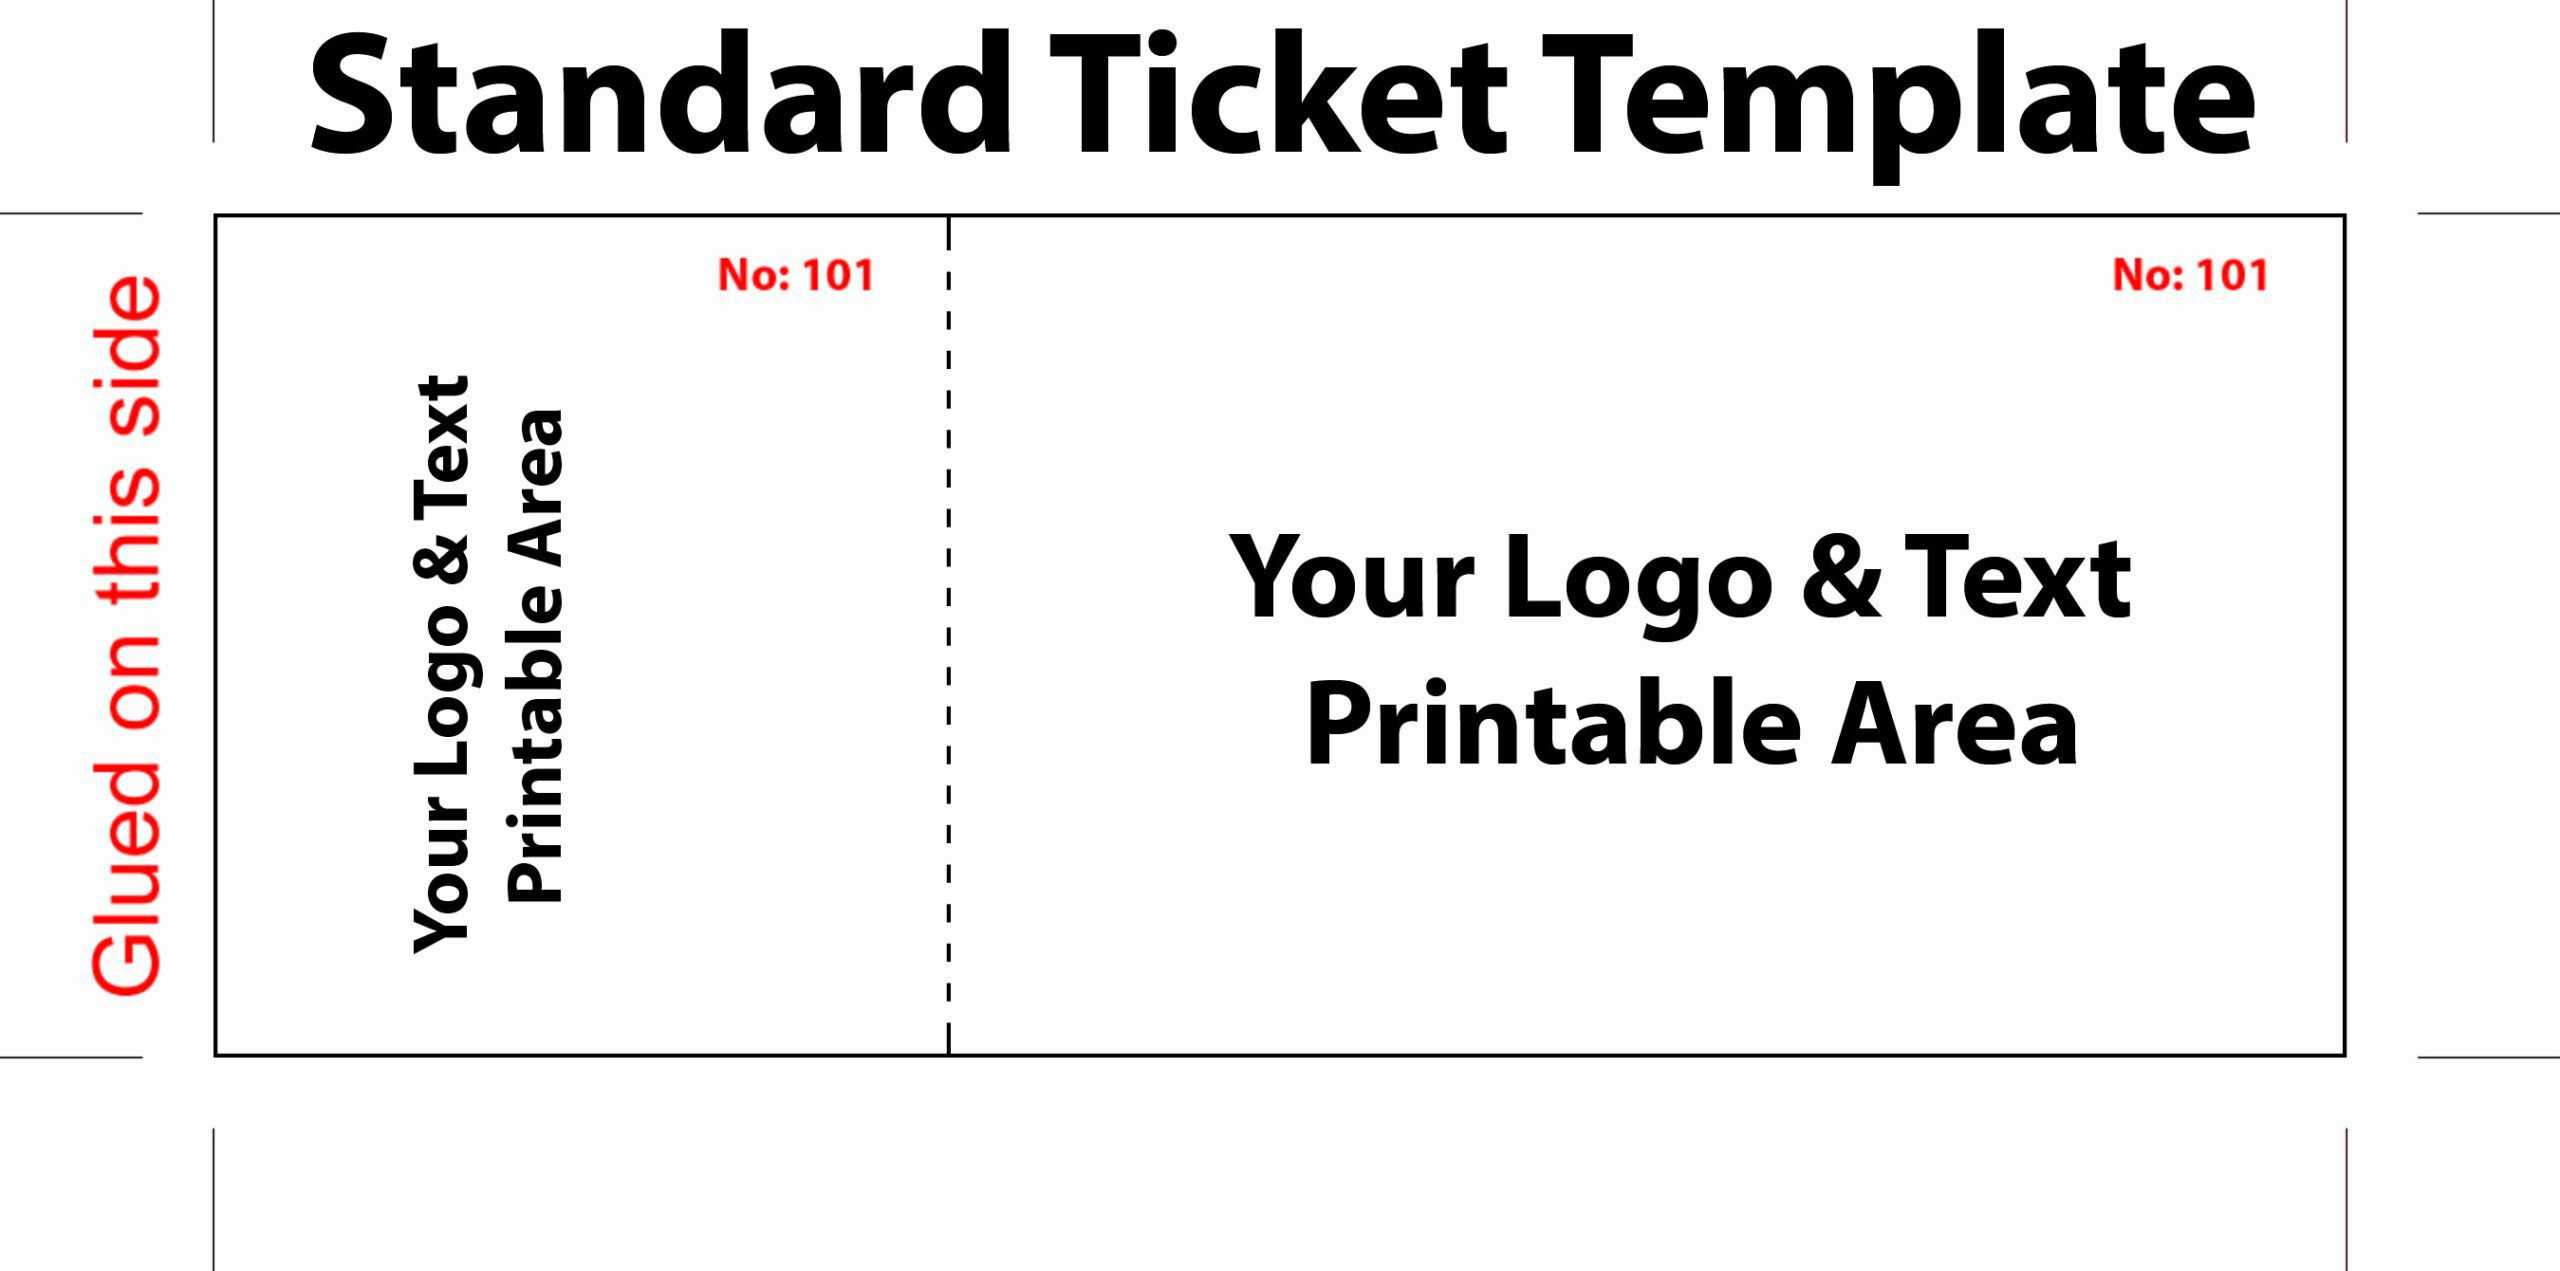 002 Striking Free Raffle Ticket Template Highest Quality  Word 10 Per Page For Mac DownloadFull